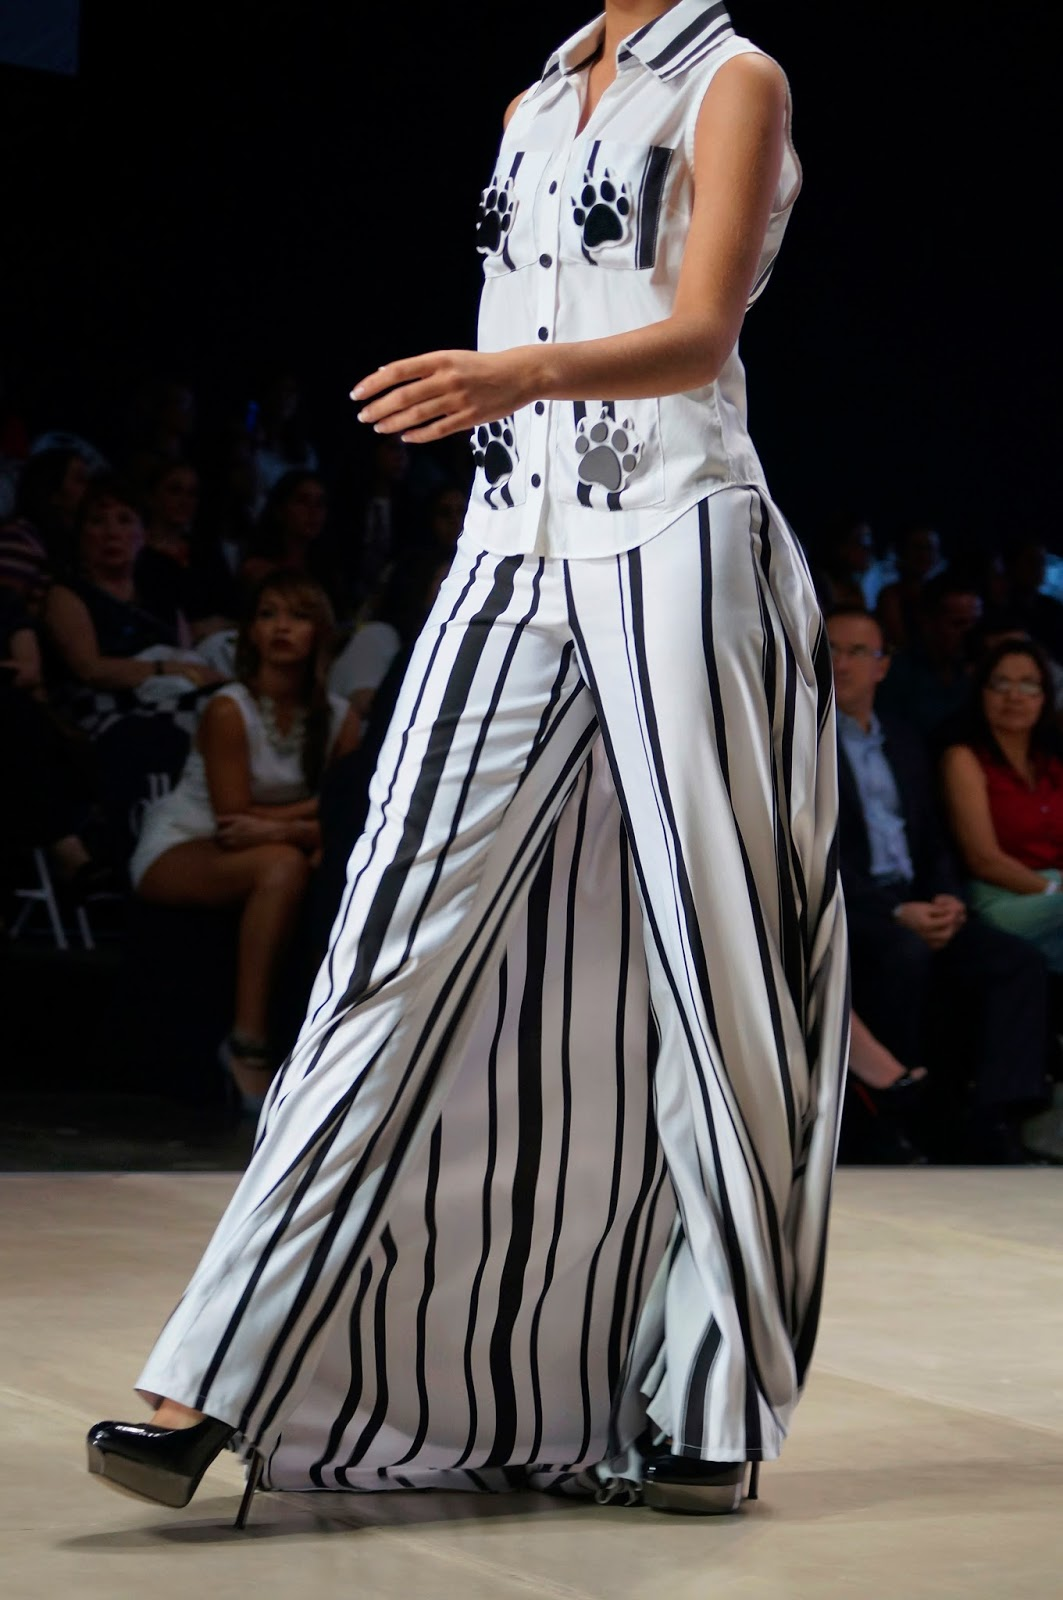 Designs by Judie and Ivonne Attie, Panama Fashion Week 2014